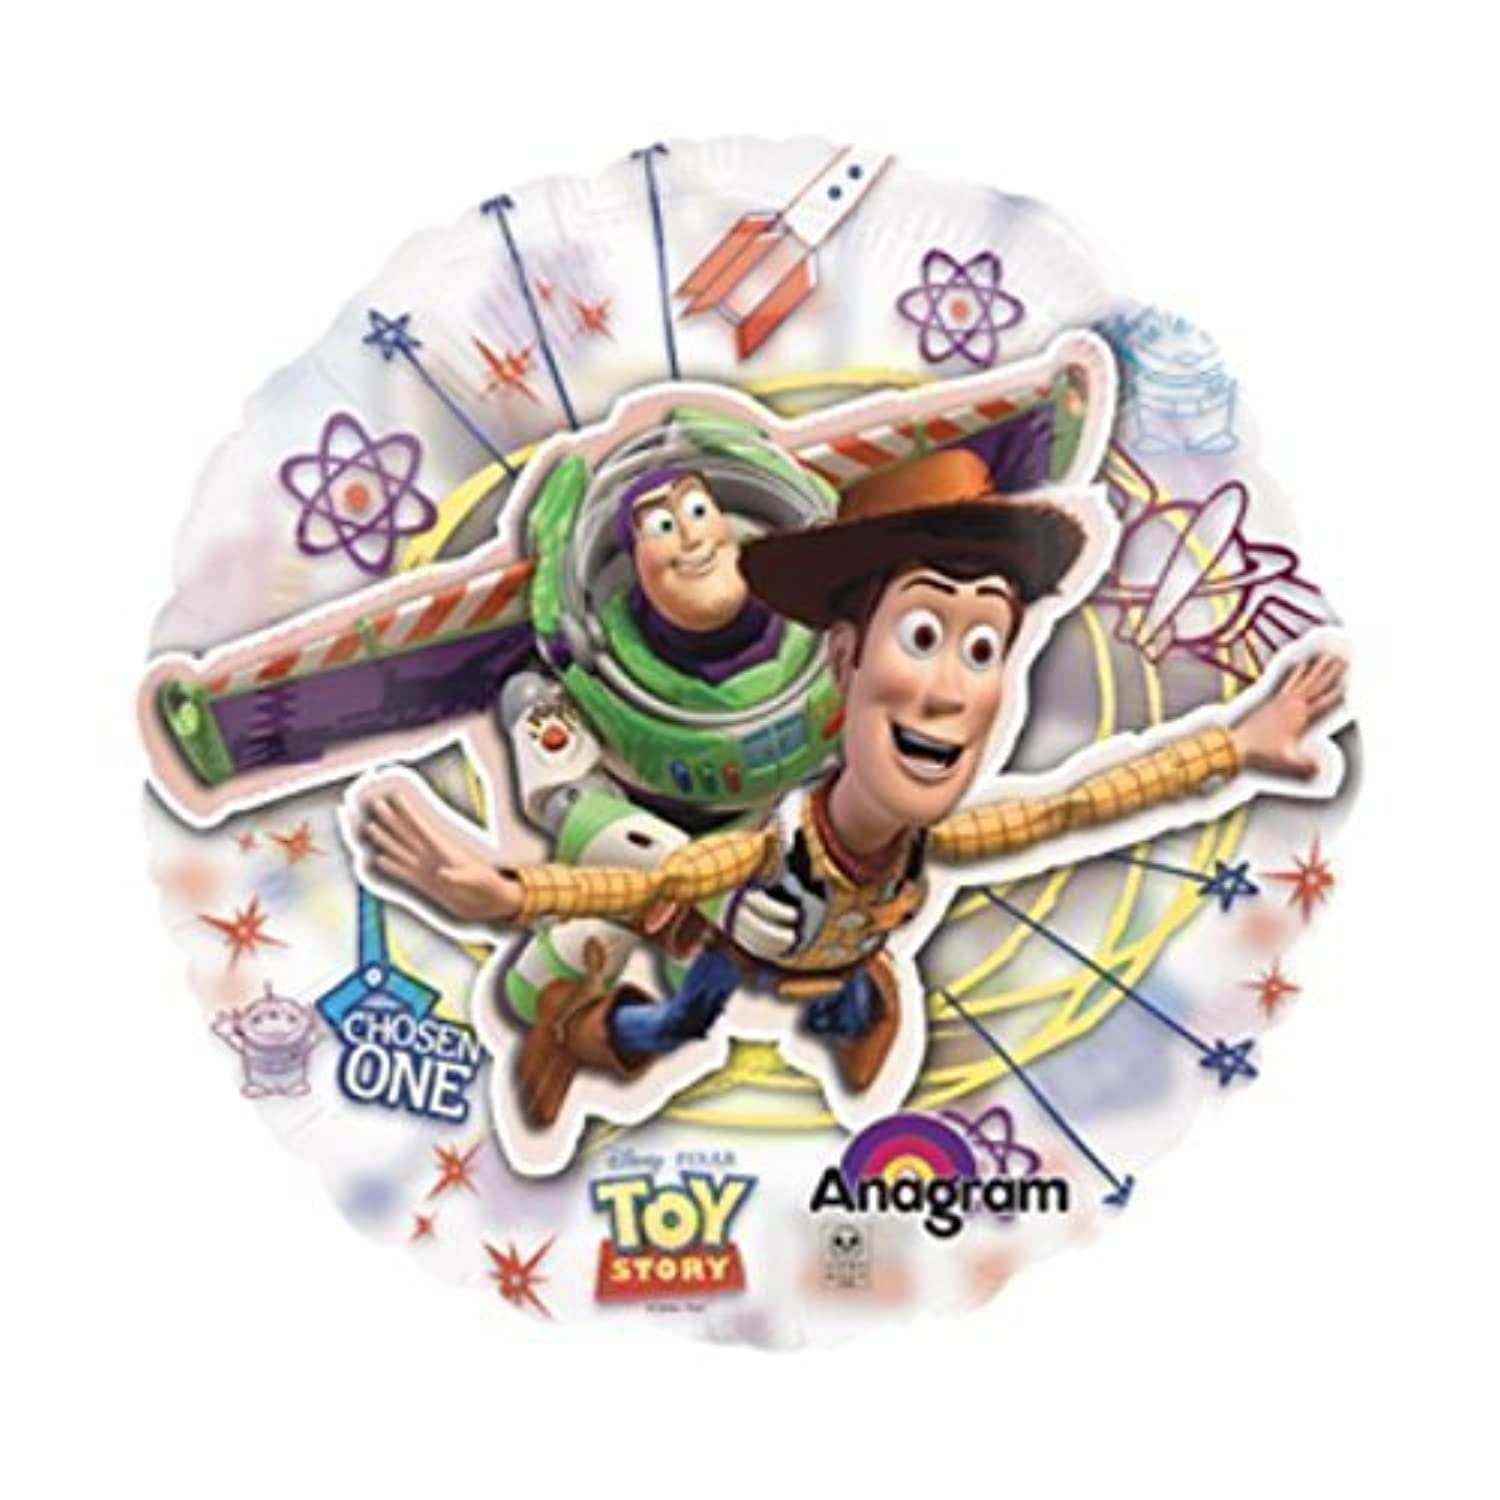 Anagram International Toy Story See-Thru Flat Party Balloons, 26', Multicolor [並行輸入品]